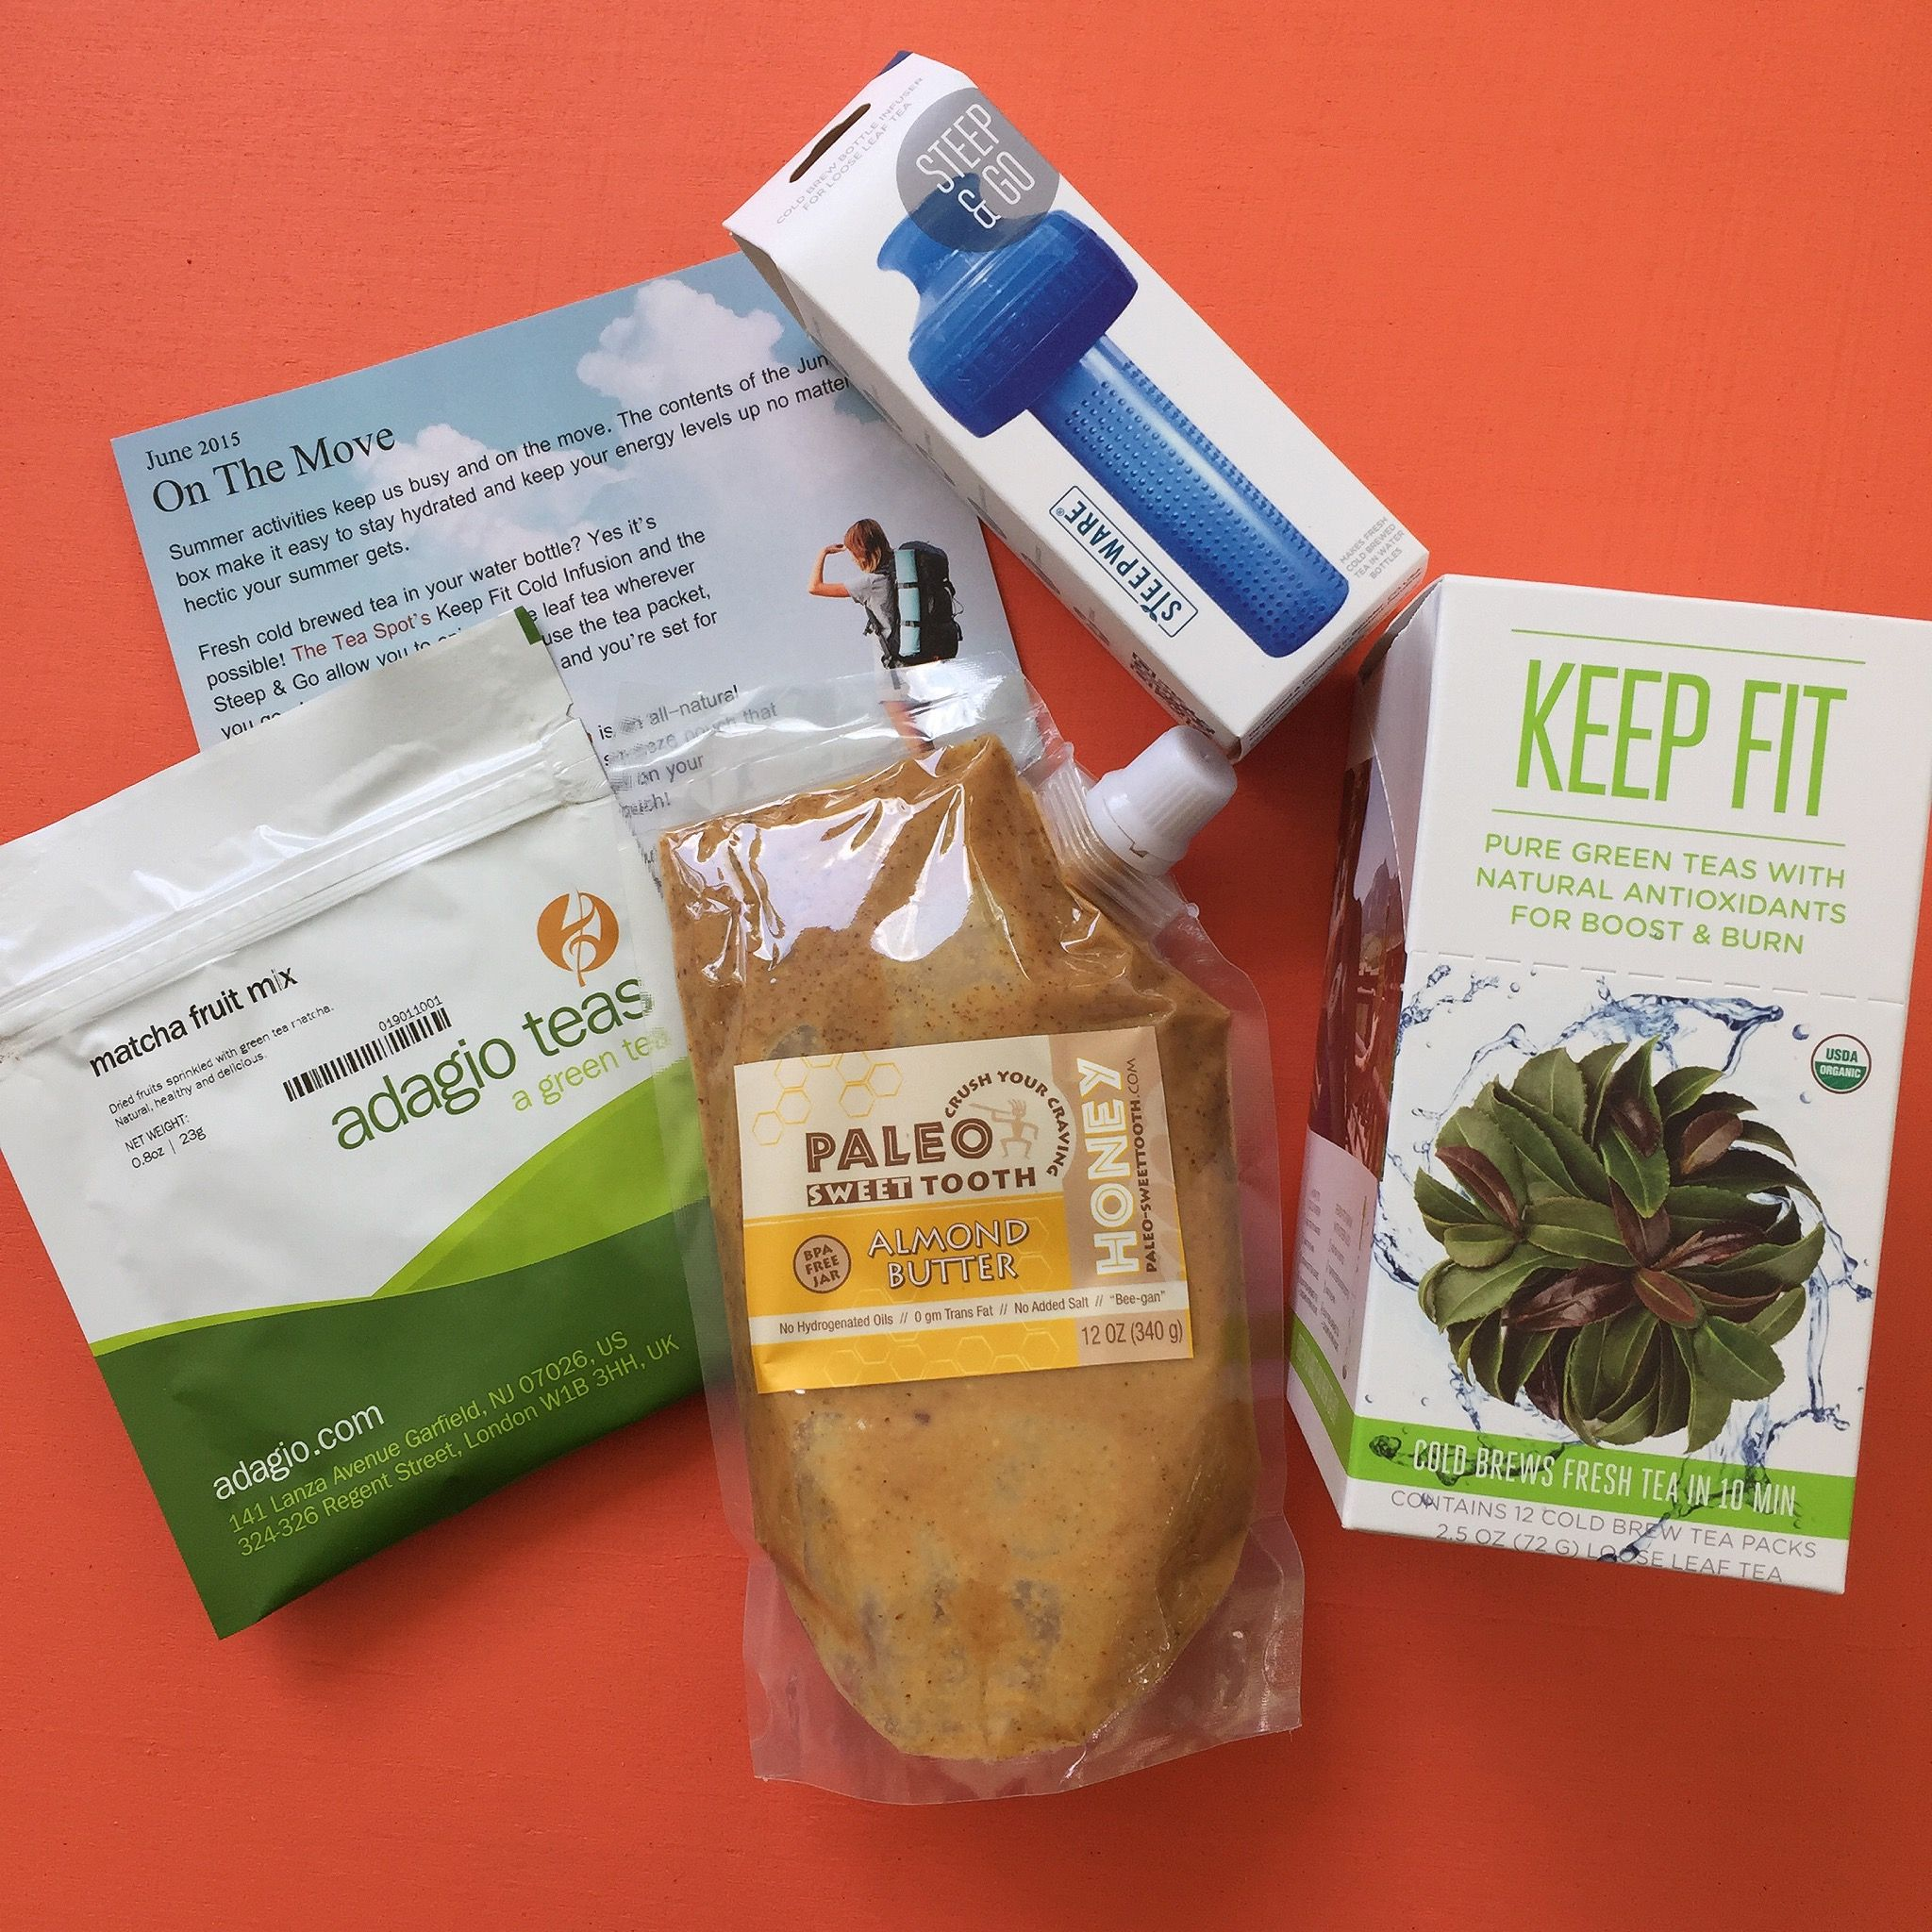 Tea Box Express June 2015 Giveaway